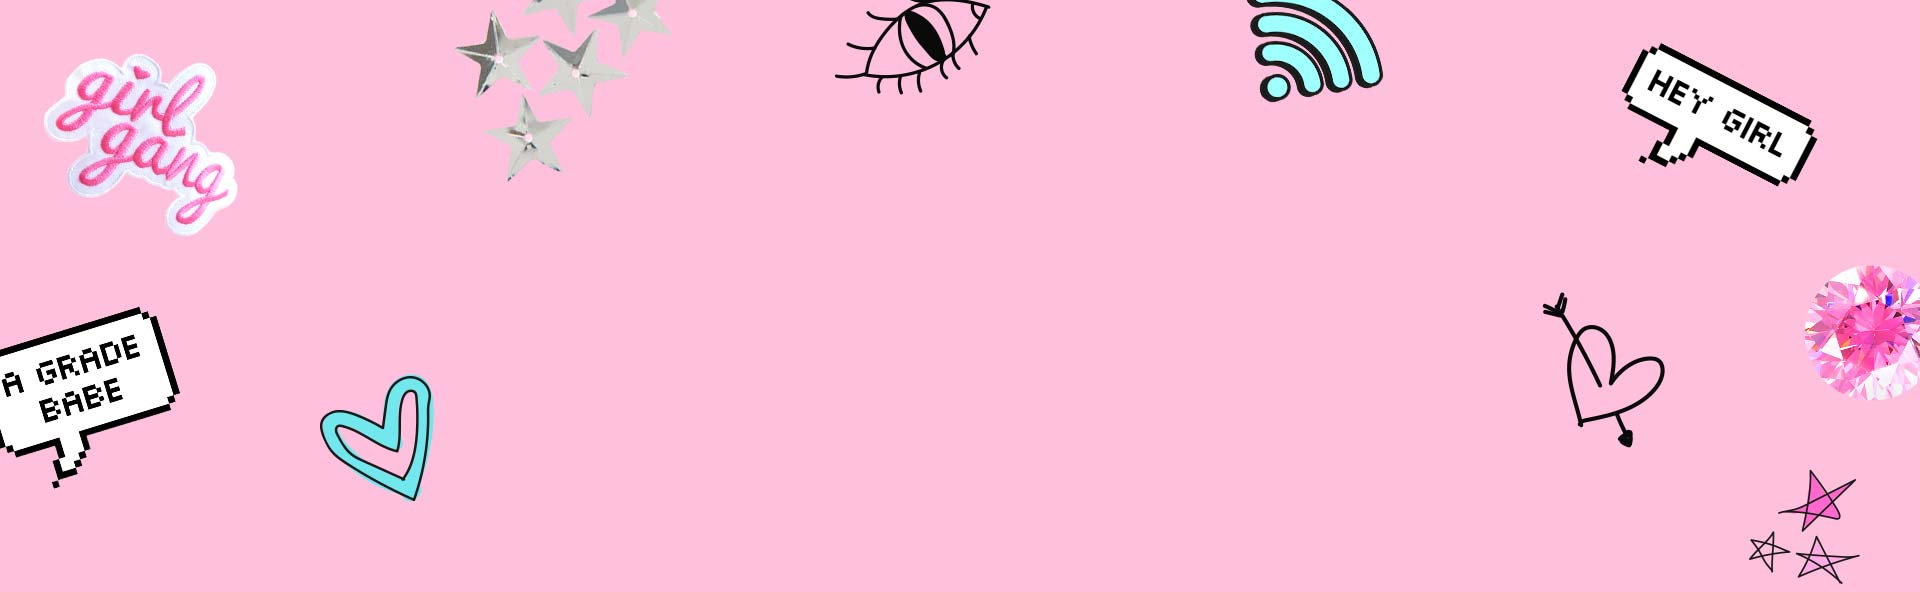 App Info Background Pink